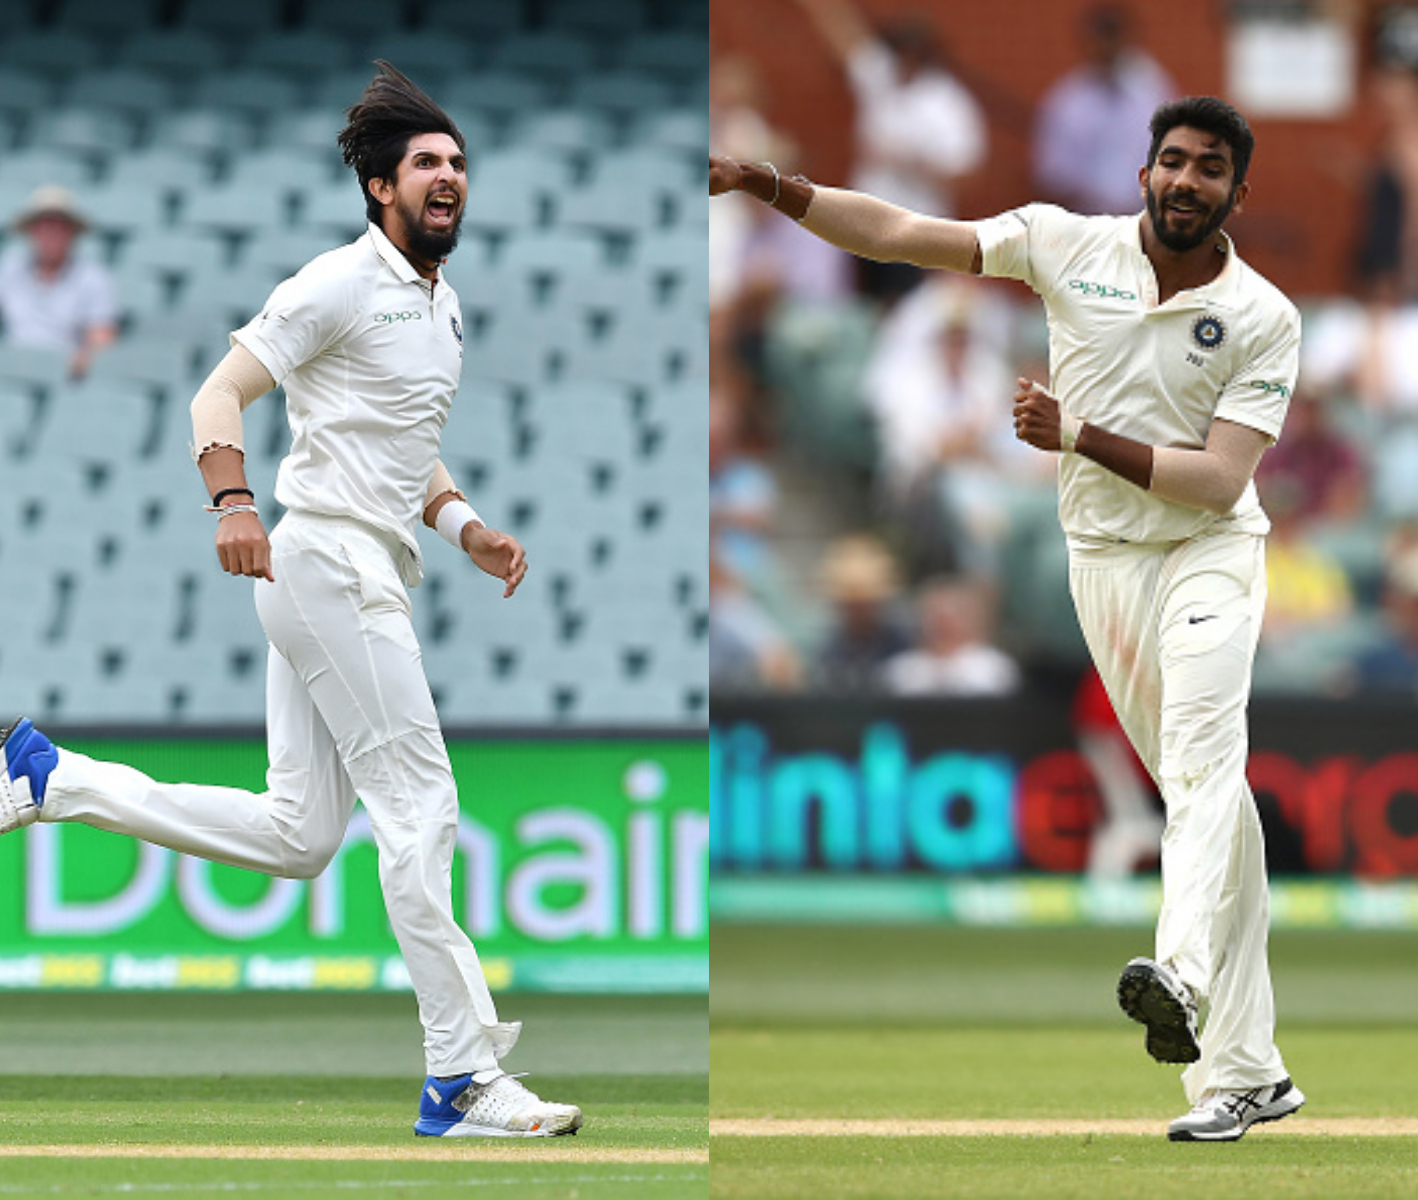 Ishant Sharma and Jasprit Bumrah supported Ashwin well with two wickets apiece | Getty